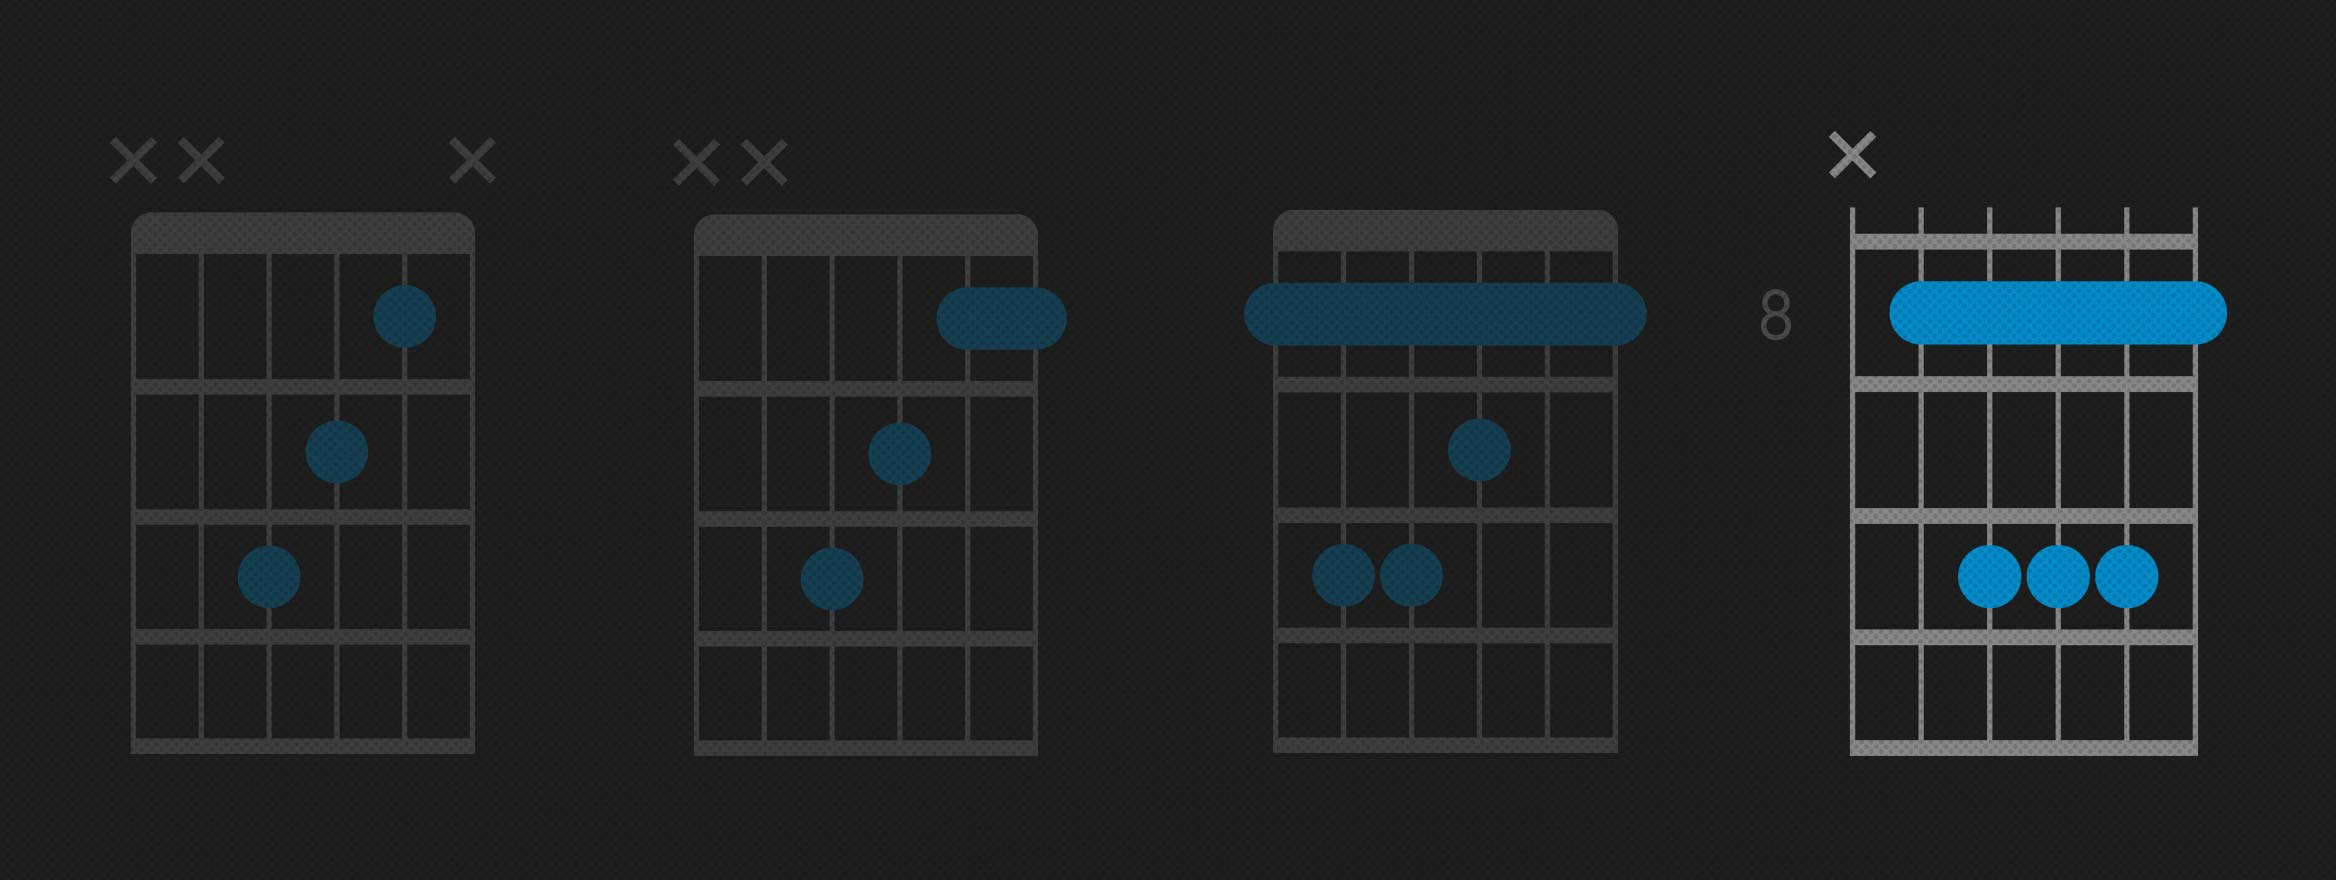 Fender How To On F GuitarMajor Play Chord qUGMVpjLSz